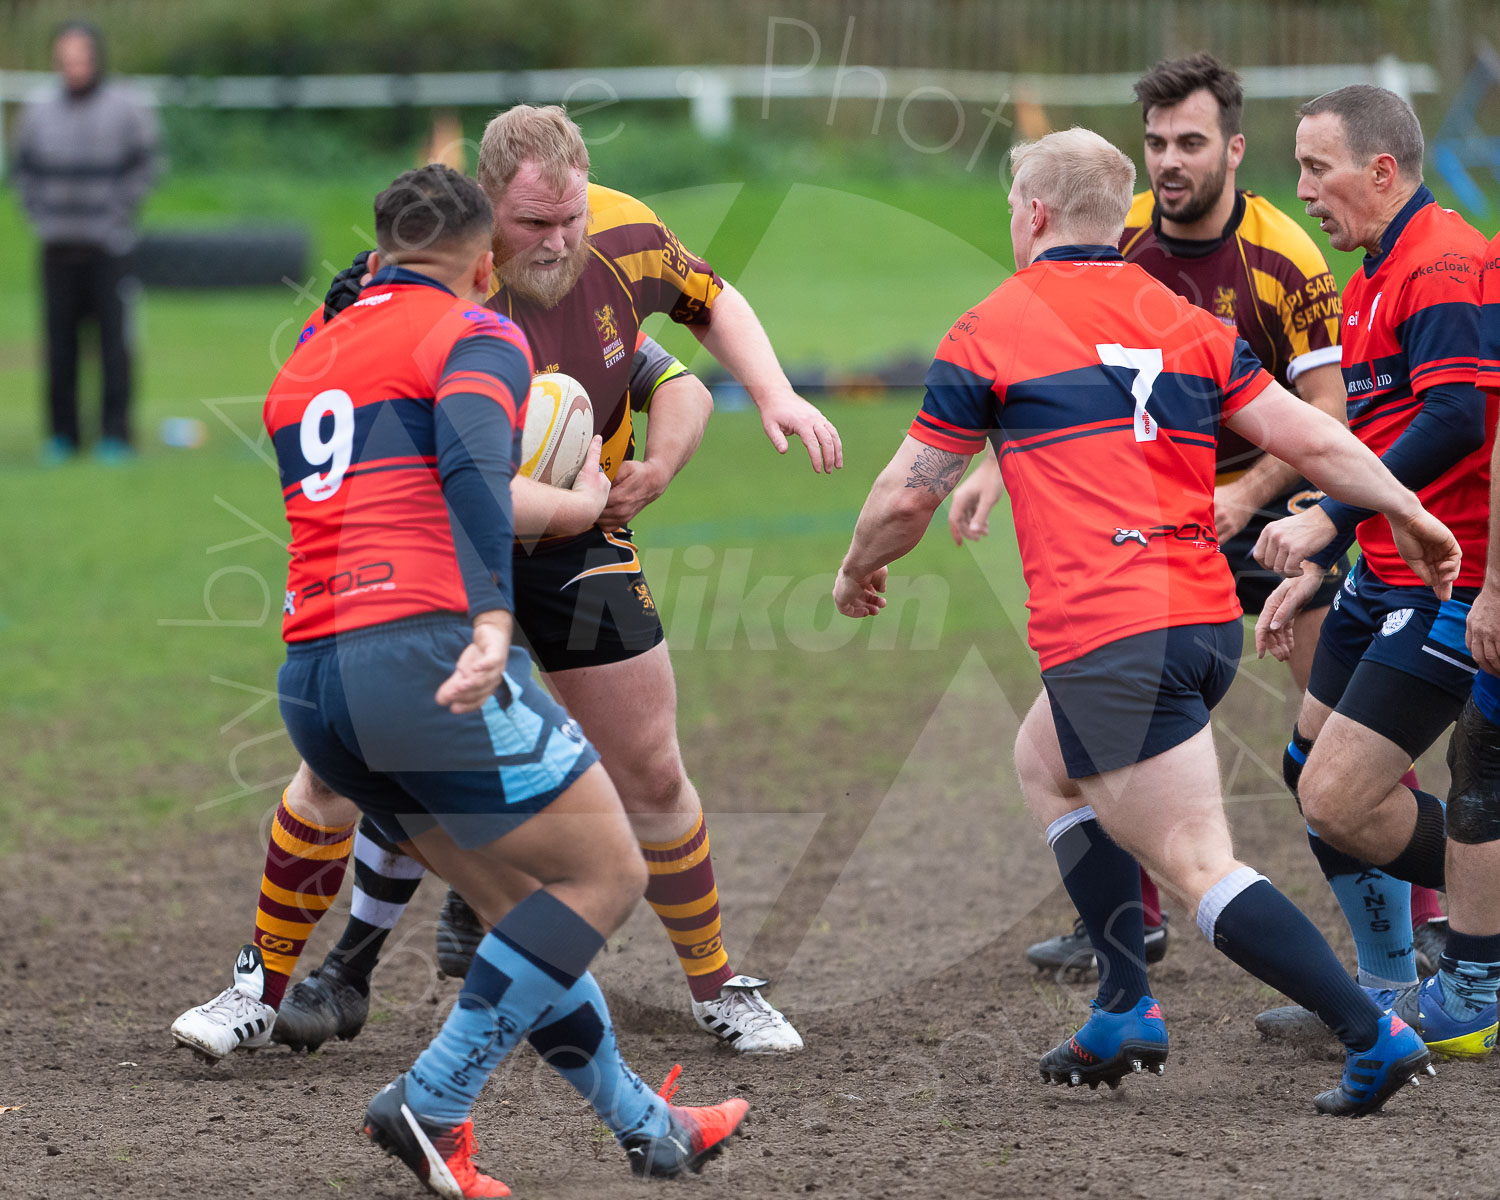 20181027 Amp Extras vs St Neots 2nd XV #2182